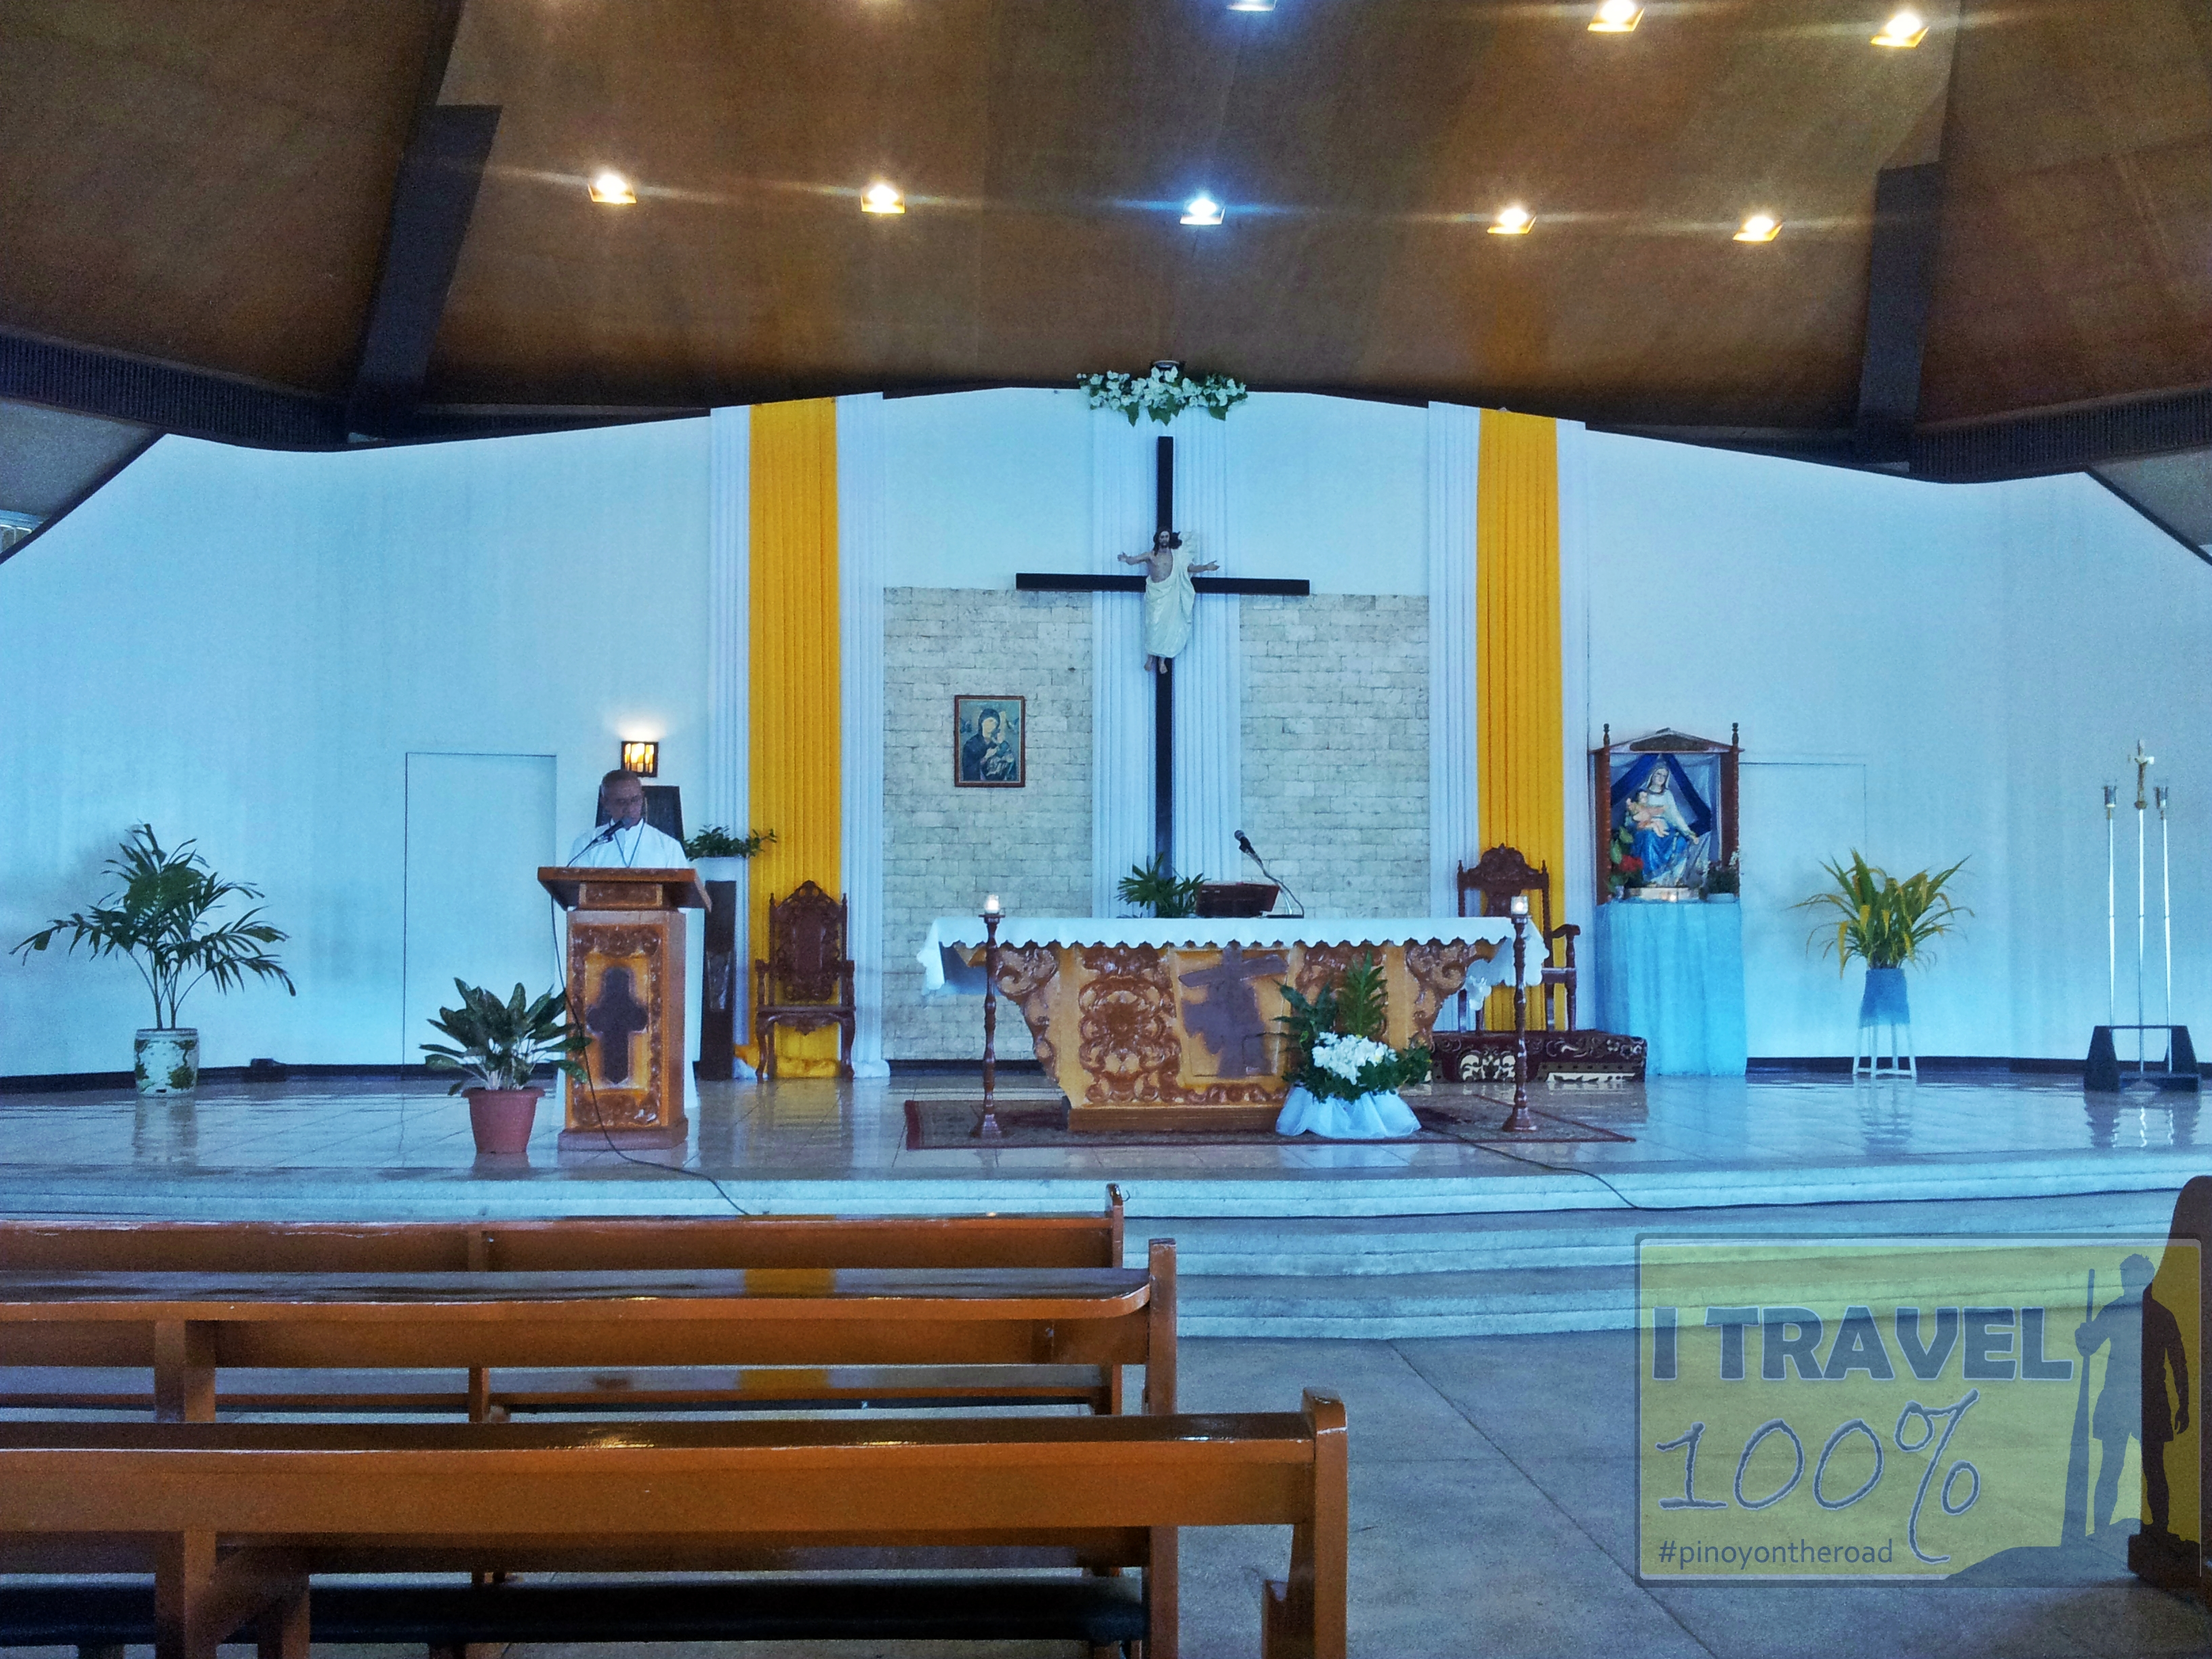 bongao catholic church in tawi tawi pinoyontheroad tawi tawi bongao catholic church church in tawi tawi photo essay